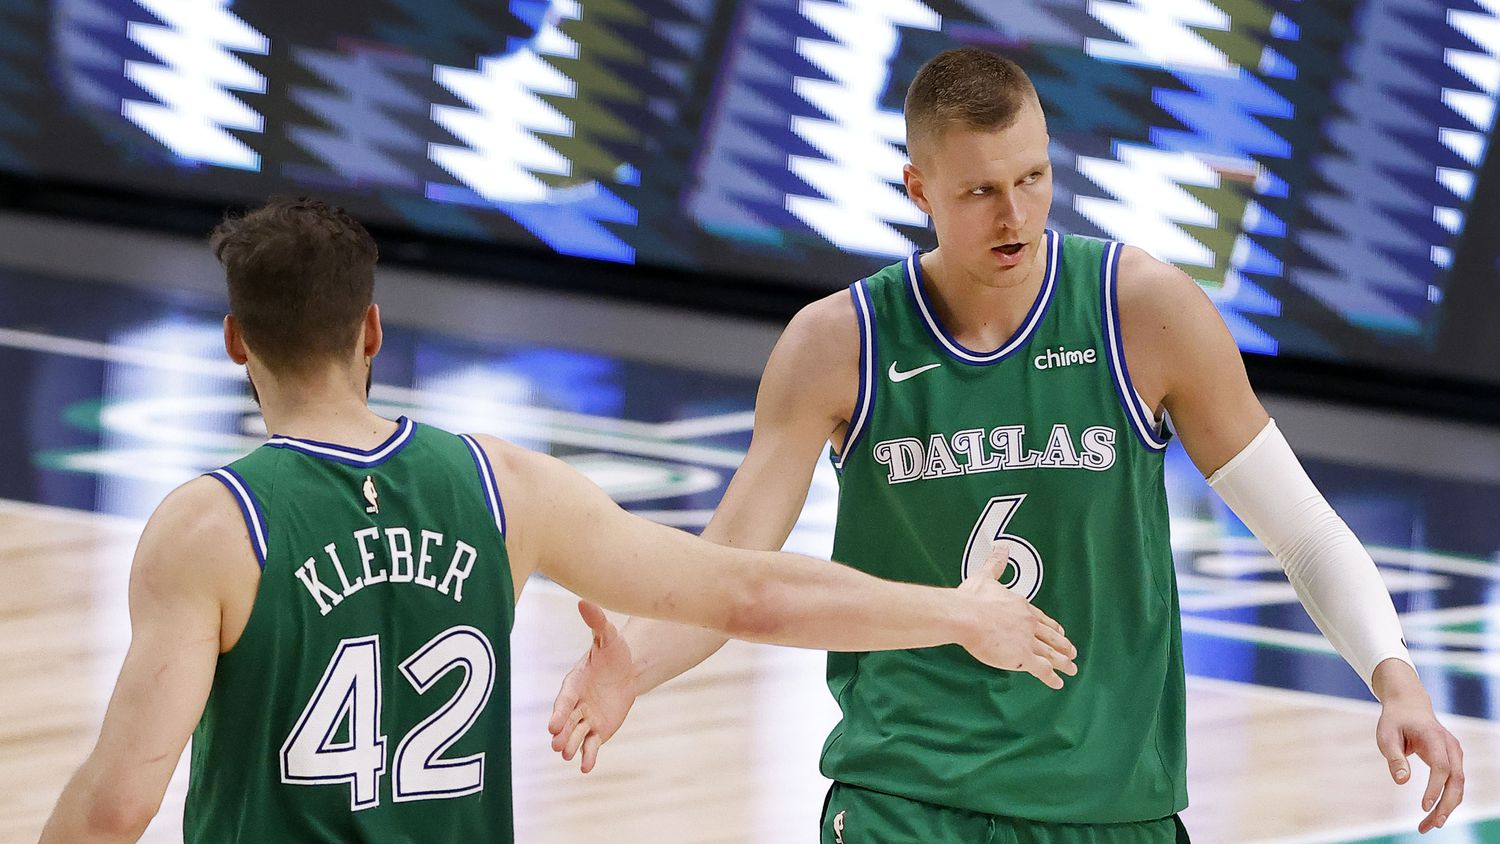 Dallas Mavericks center Kristaps Porzingis (6) is congratulated on his fourth quarter play by teammate Maxi Kleber (42) at the American Airlines Center in Dallas, Thursday, April 8, 2021. The Maverick defeated the Bucks, 116-101.